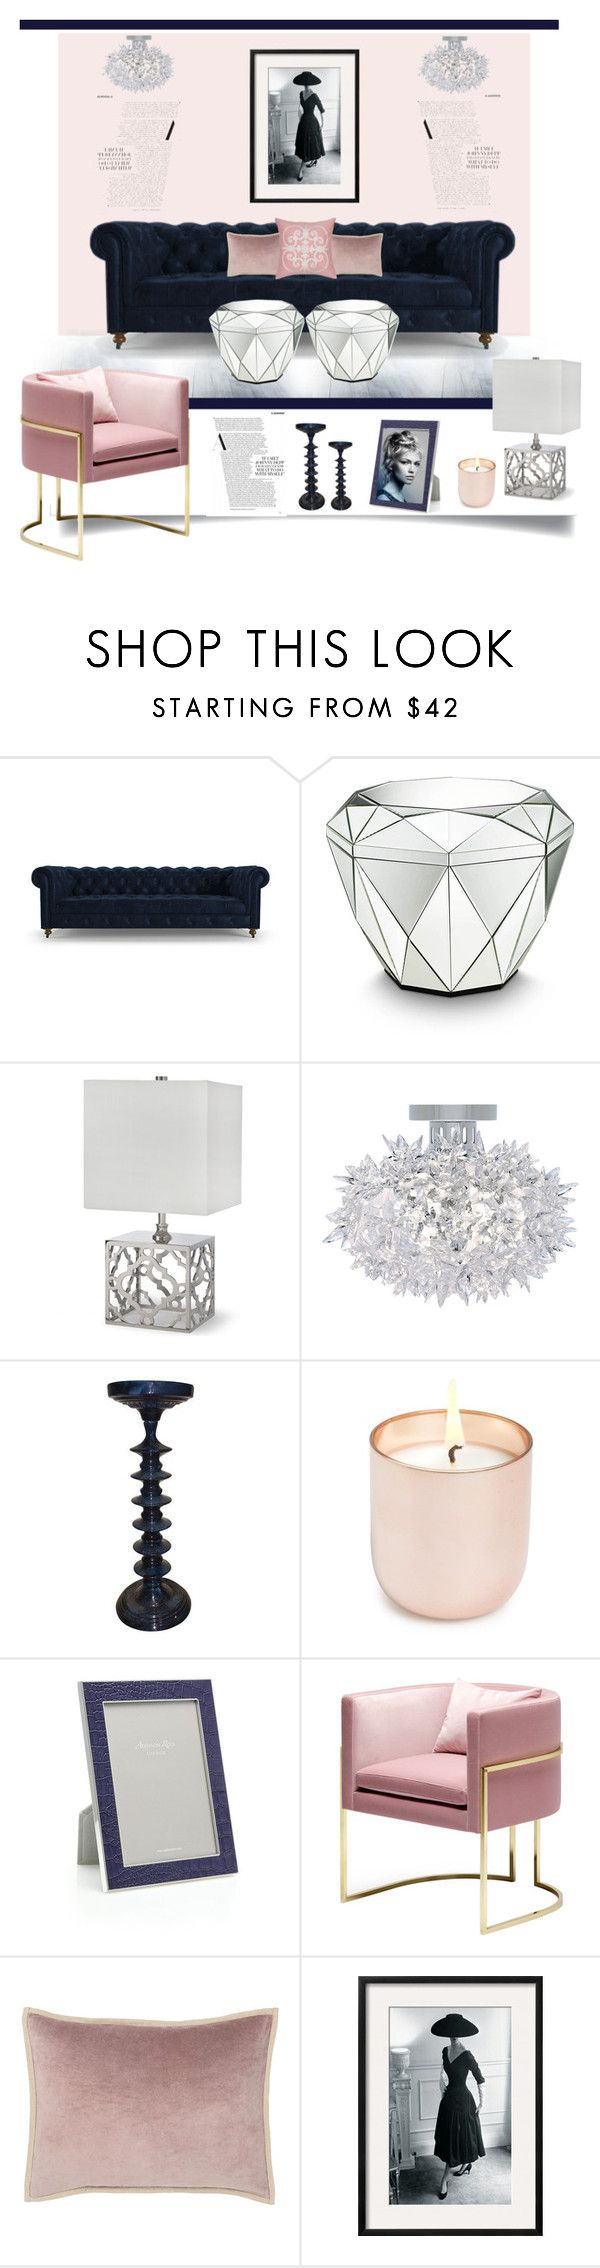 """A Feminine Touch'"" by dianefantasy on Polyvore featuring interior, interiors, interior design, дом, home decor, interior decorating, Joybird Furniture, Clayton, Kartell и Jonathan Adler"